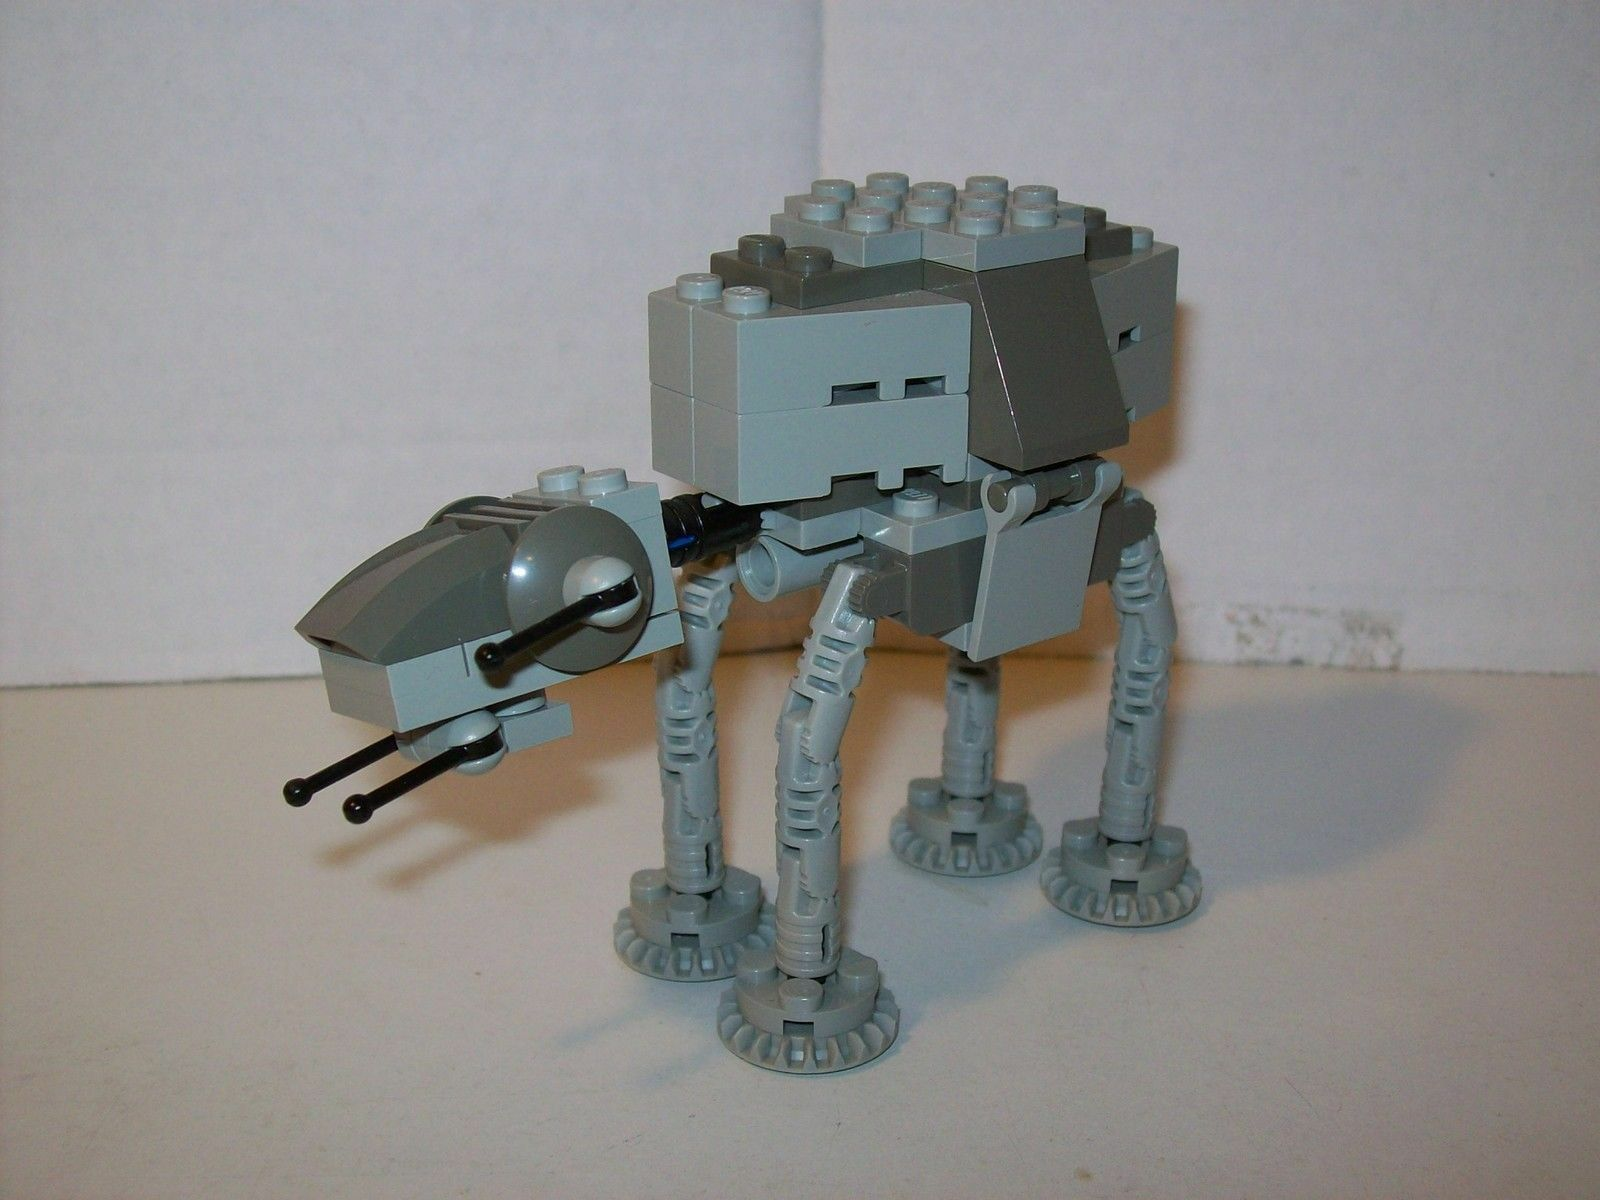 LEGO LEGO LEGO Star Wars - Rare Mini 4489 AT-AT - Complete - 98 pieces 10179 d0a5f5